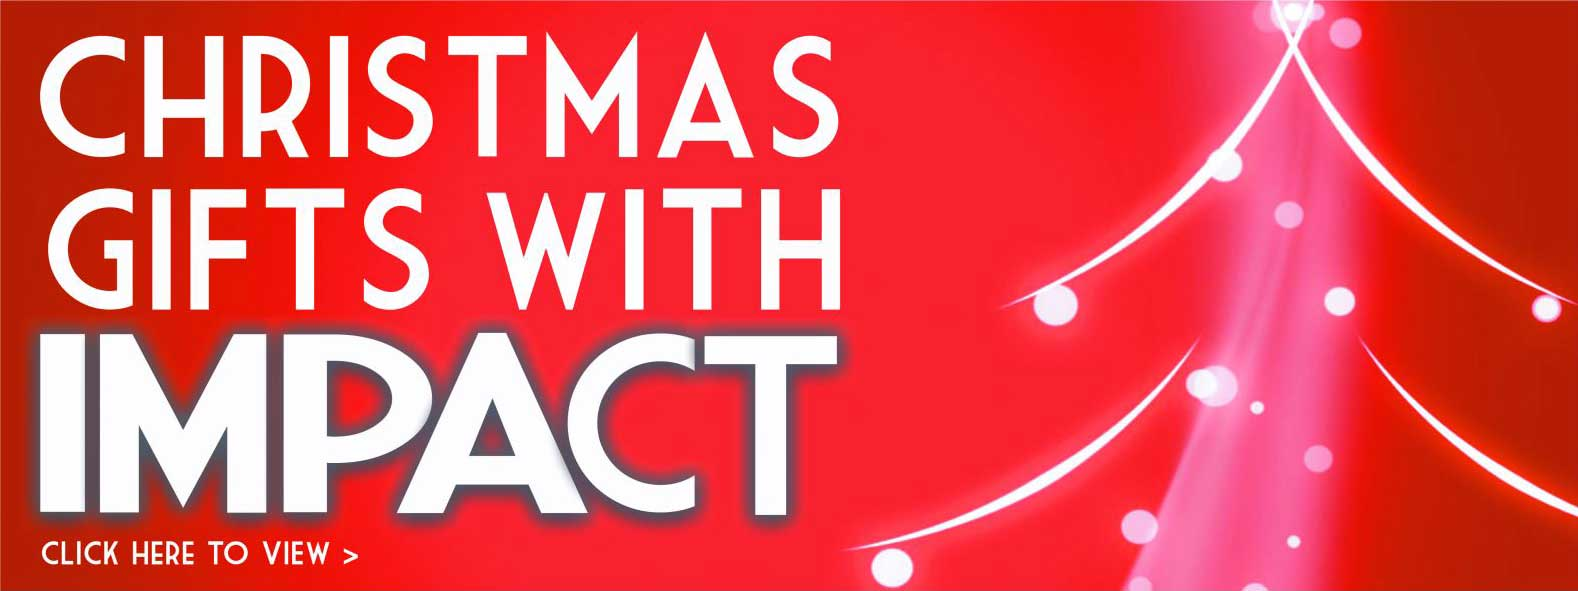 Click here for Christmas gifts with IMPACT